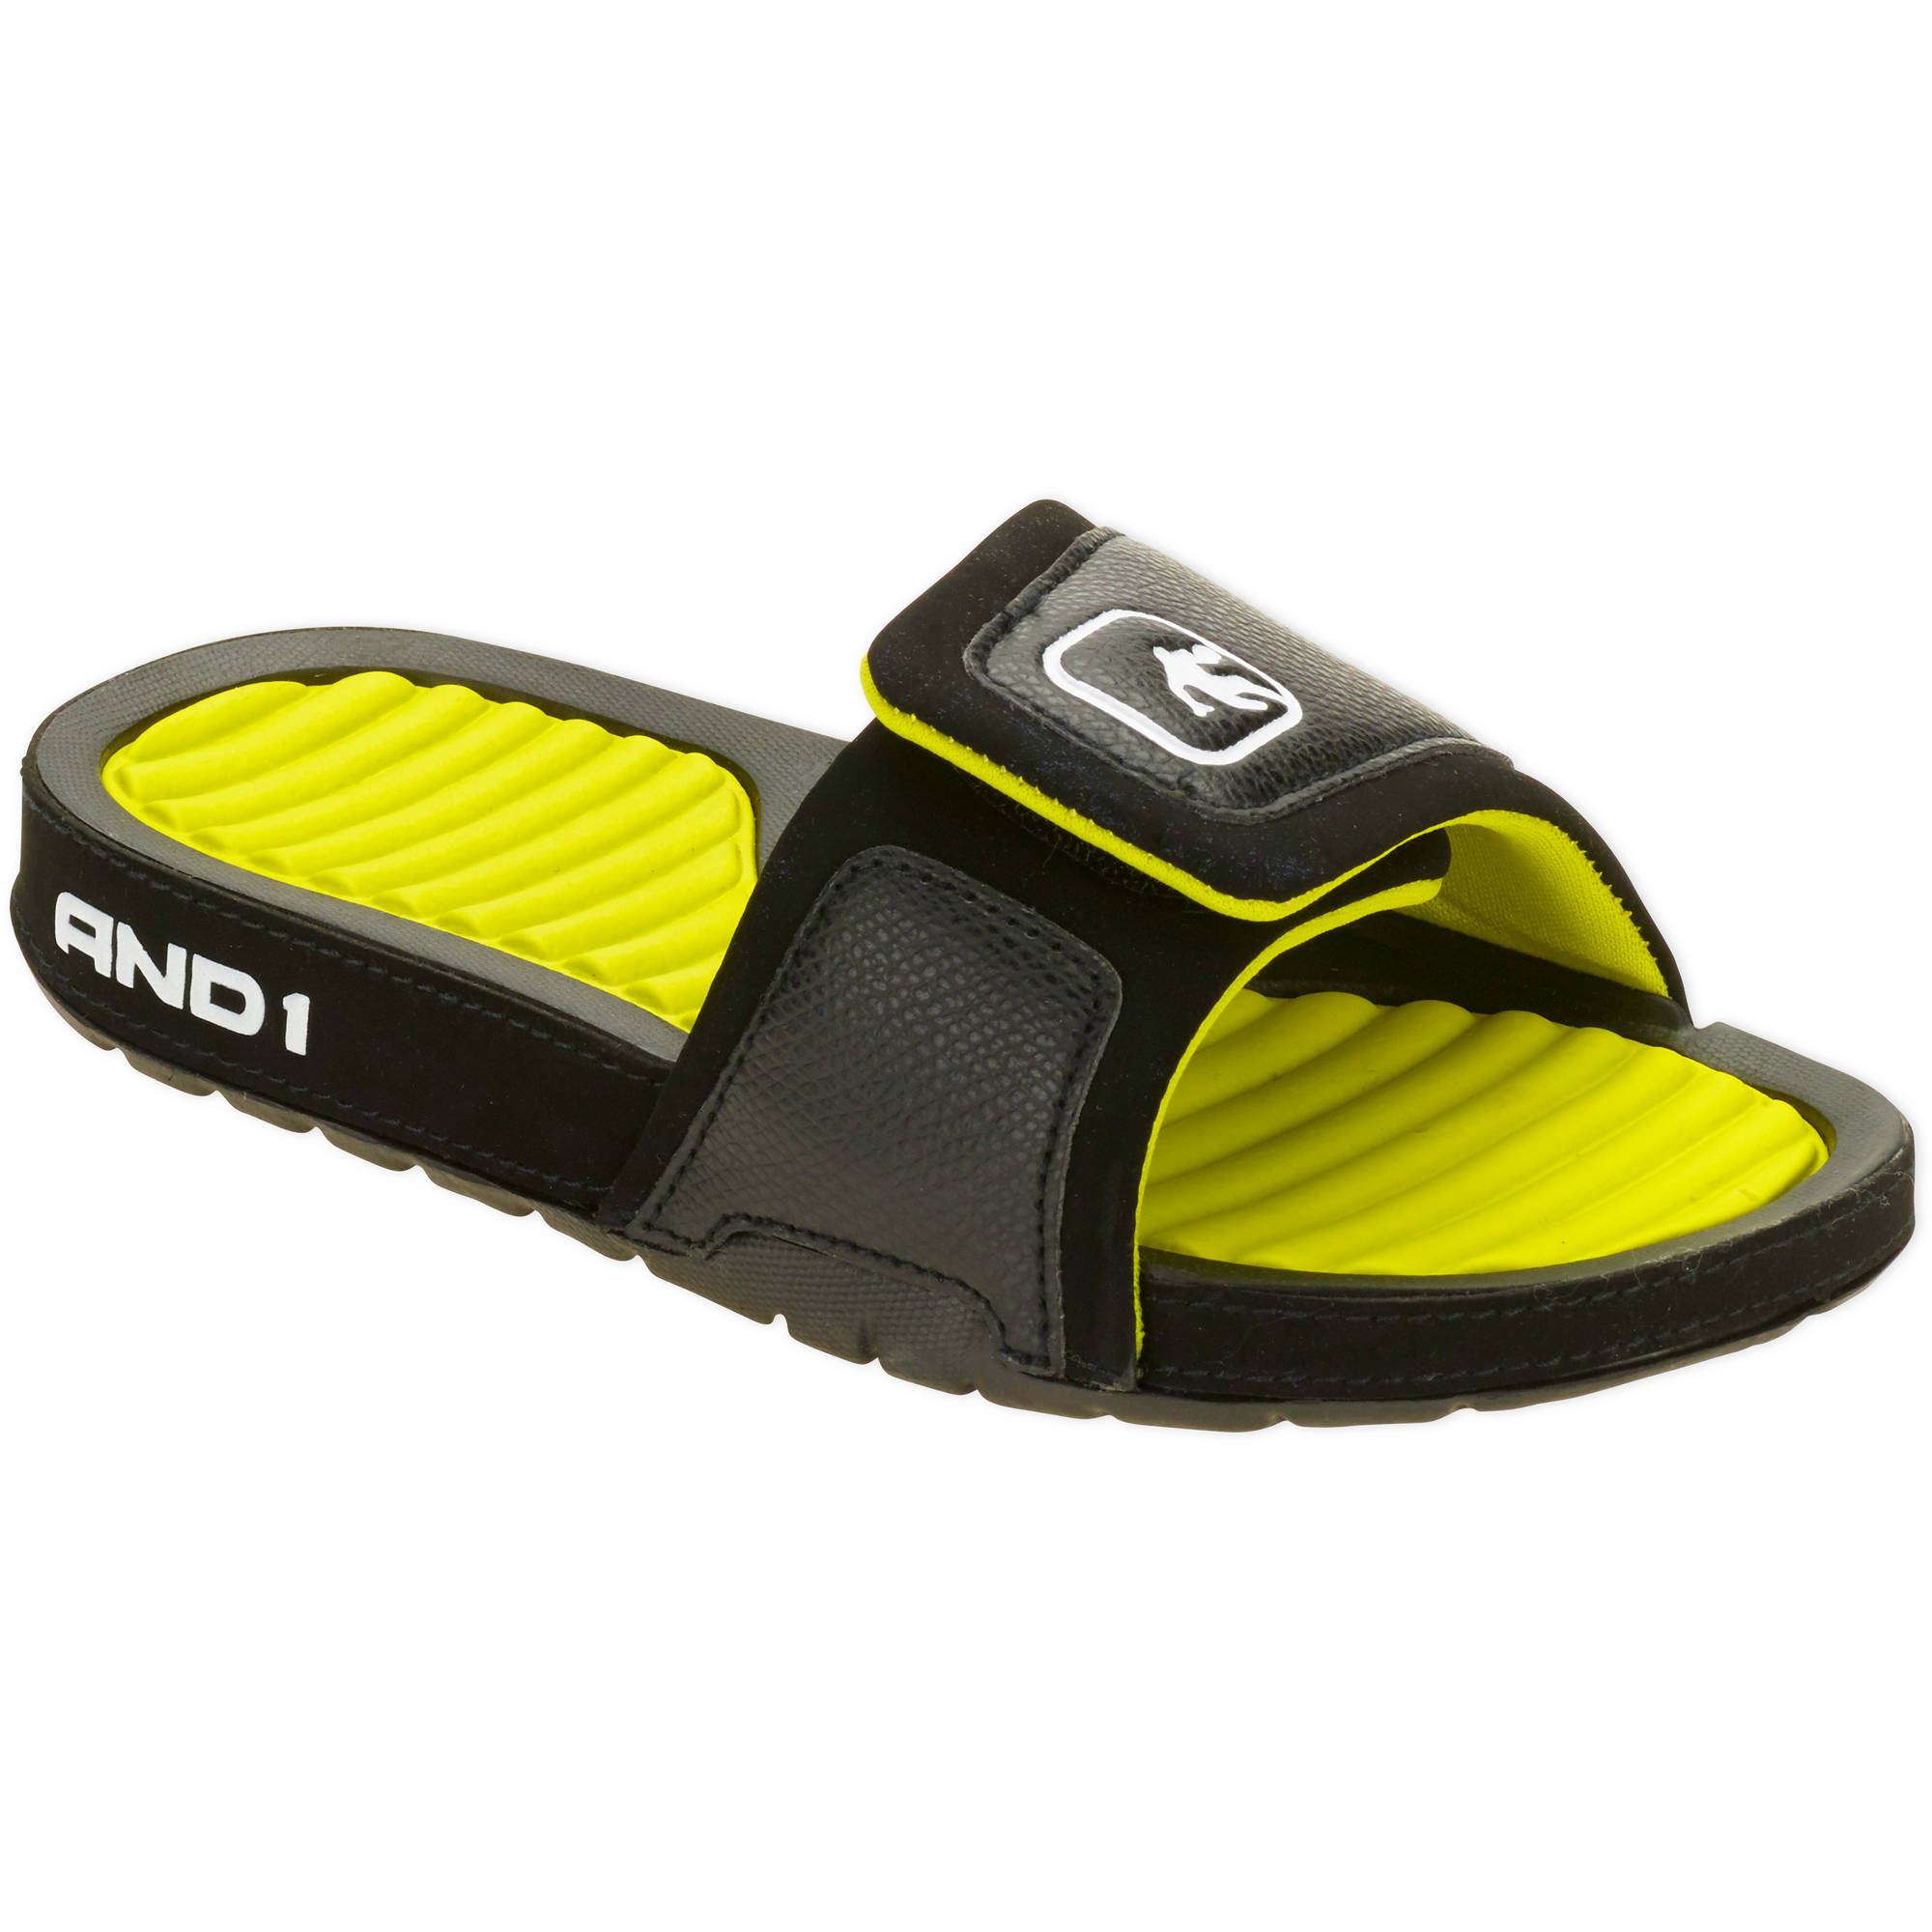 AND1 Youth Boys' Enigma Sandal